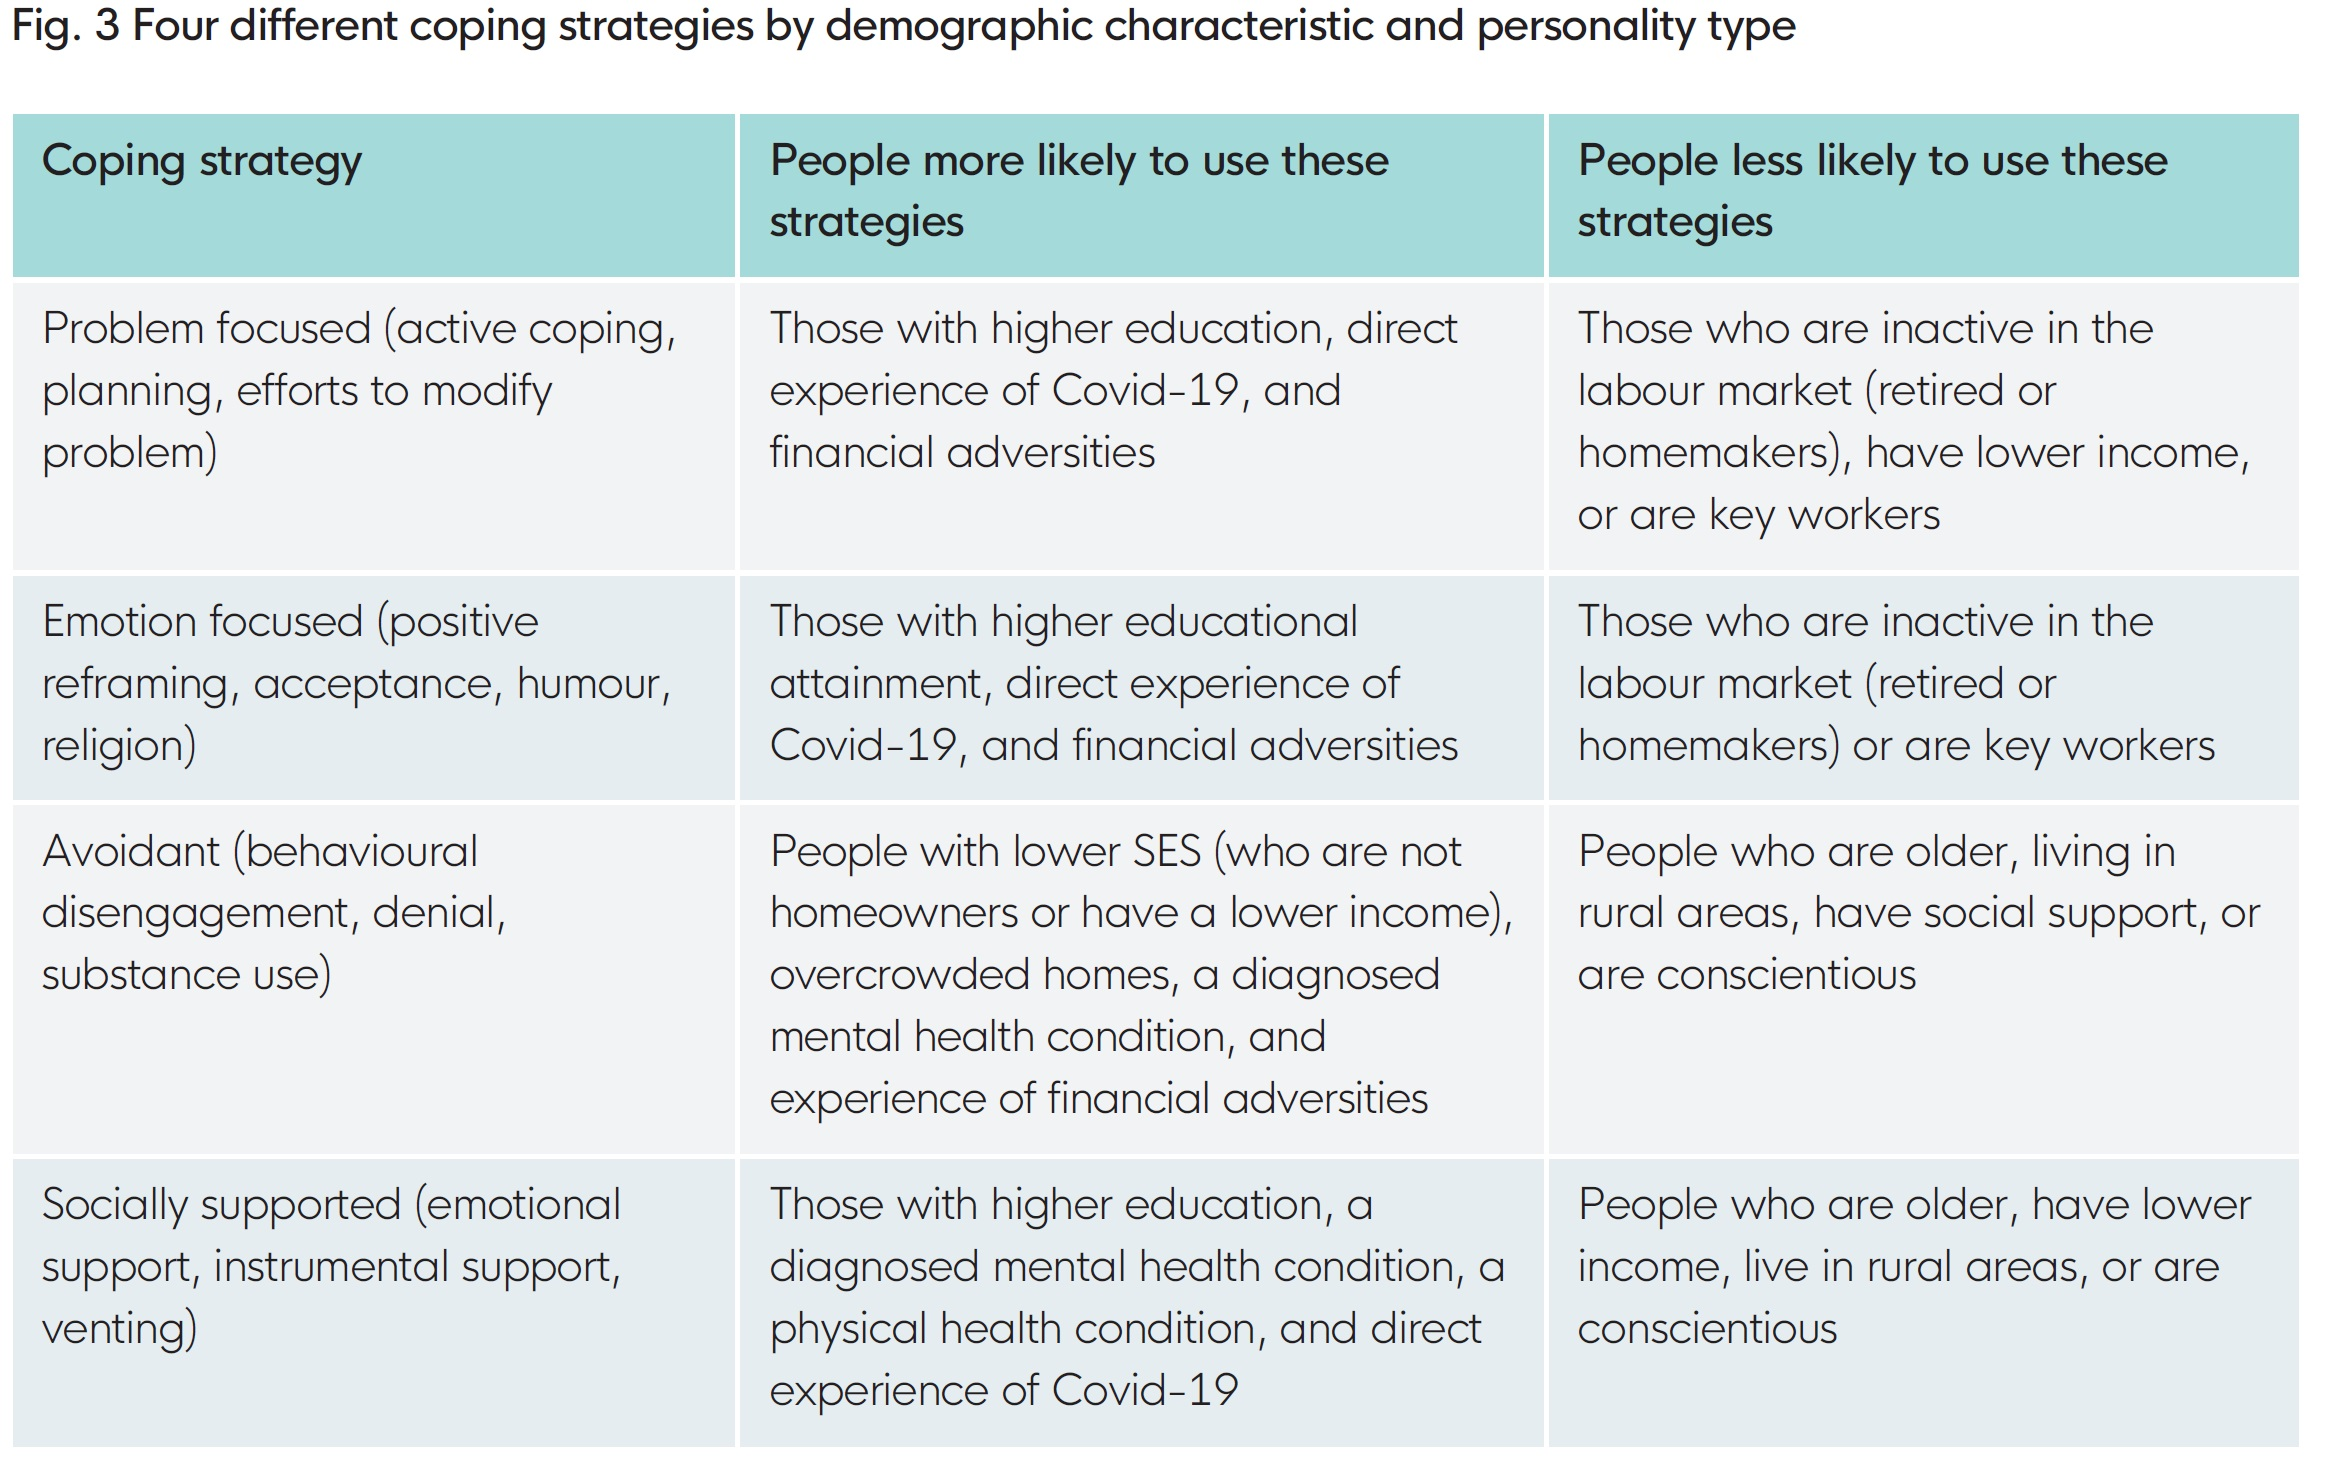 Fig. 3 Four different coping strategies by demographic characteristic and personality type